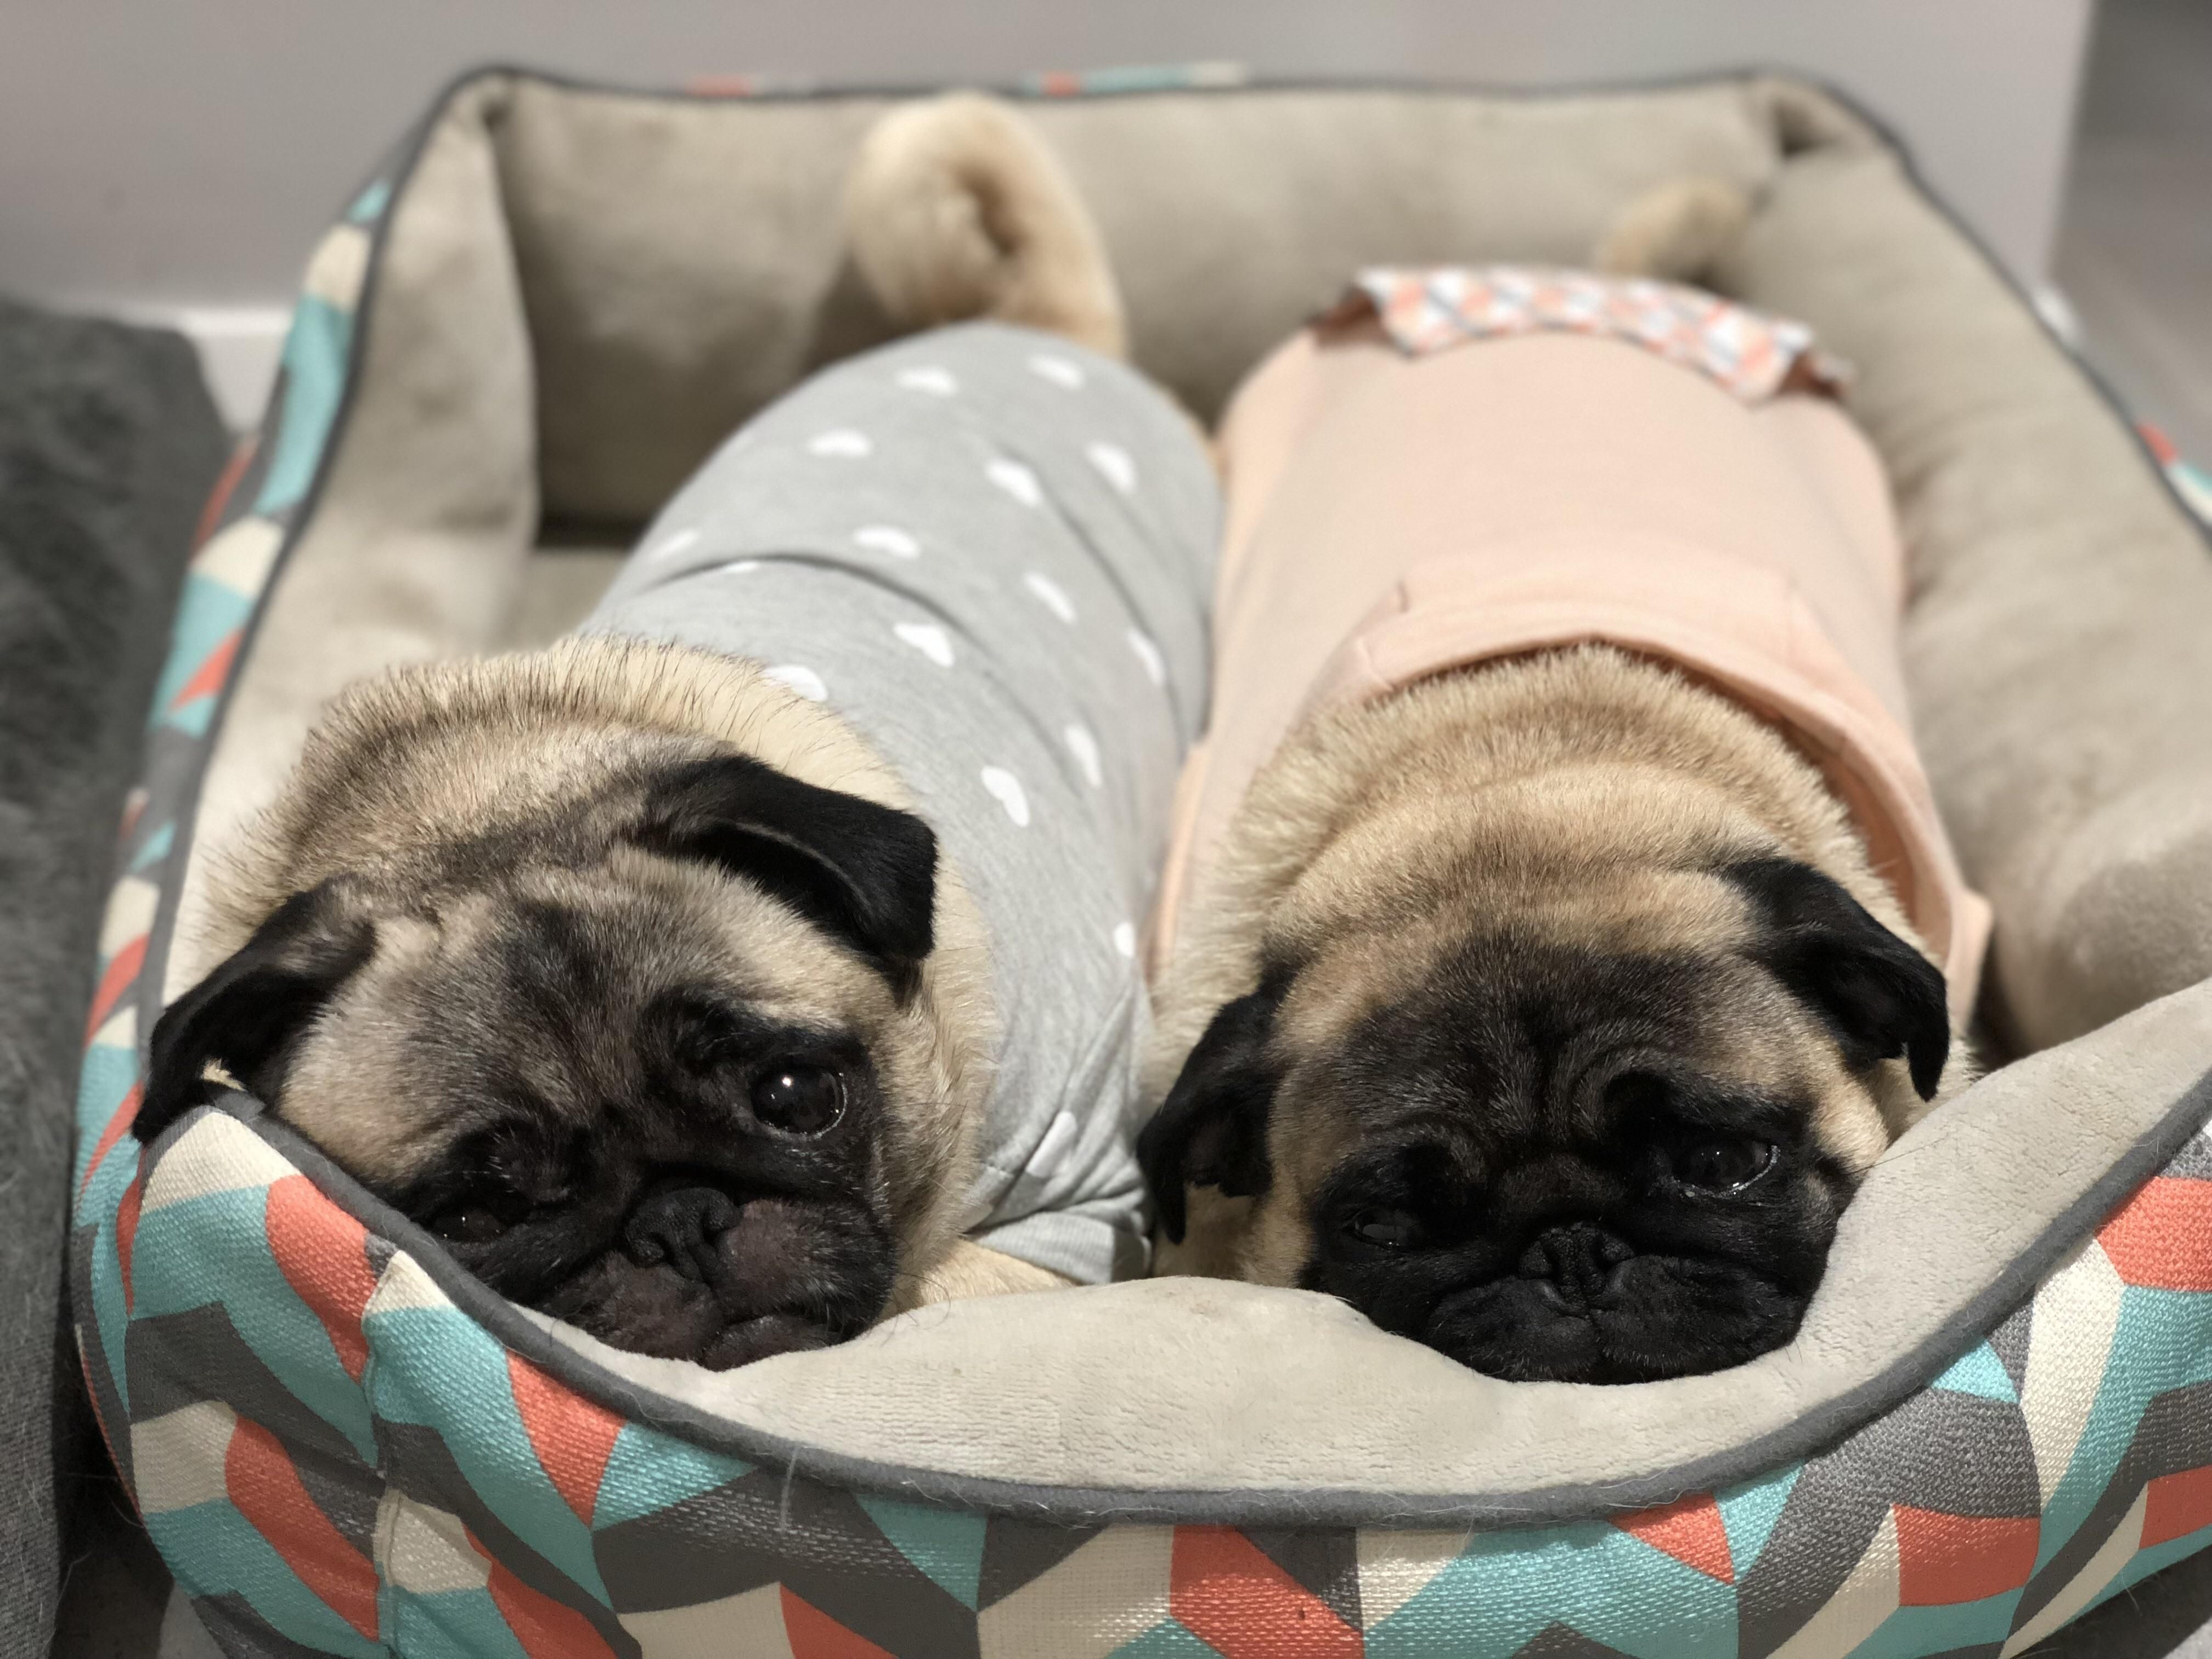 Two Peas In A Pod Https Ift Tt 2ghjzsh Pugs Pugs Funny Baby